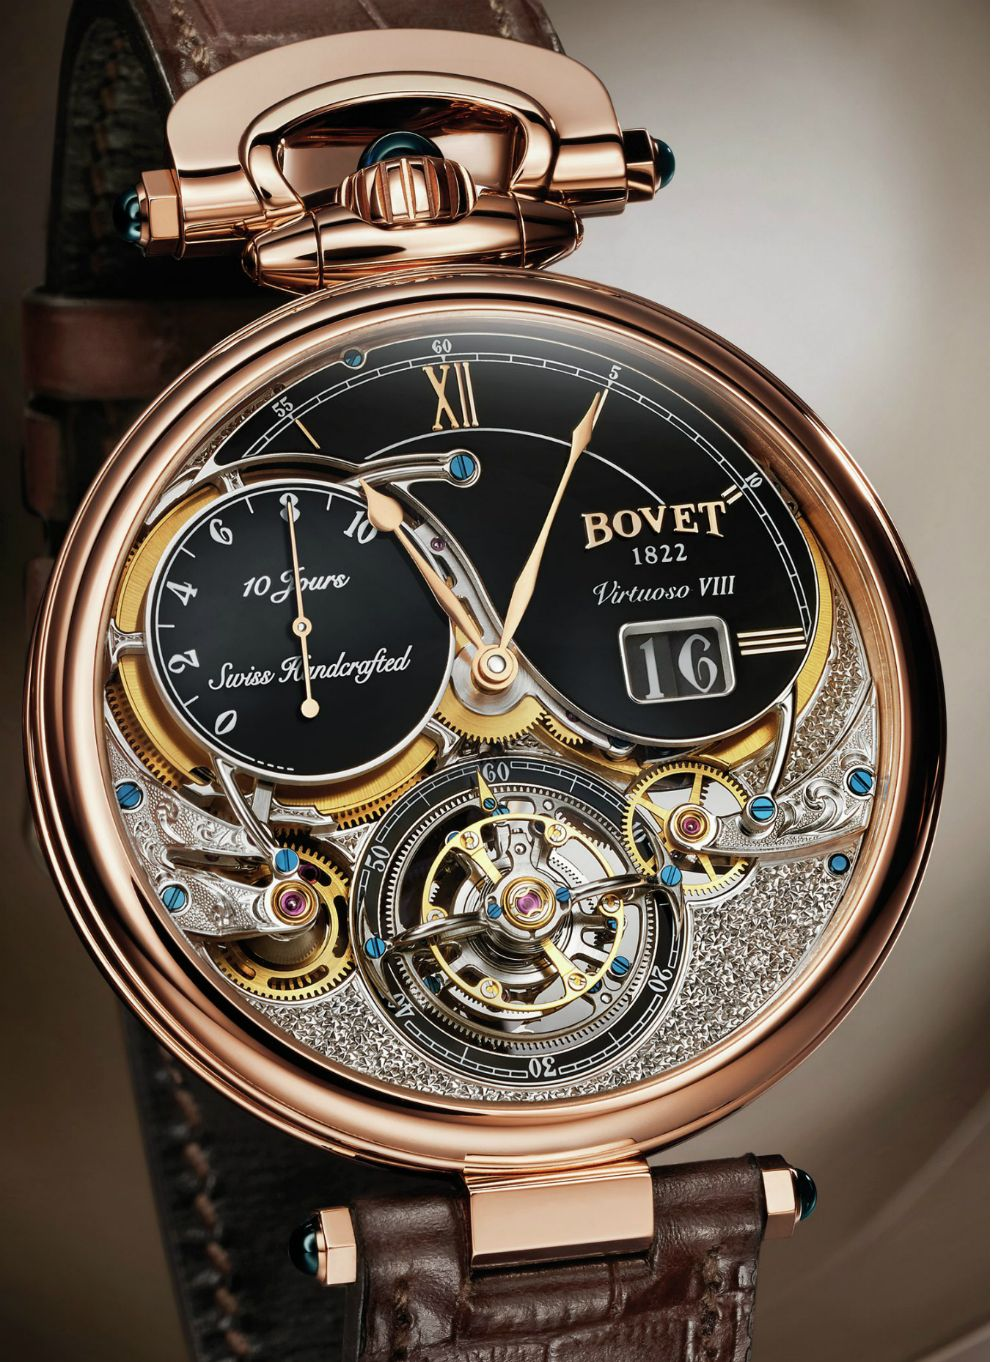 rium watch and worldtempus bg r asterium article technology finder recital bovet innovation ast cital watches